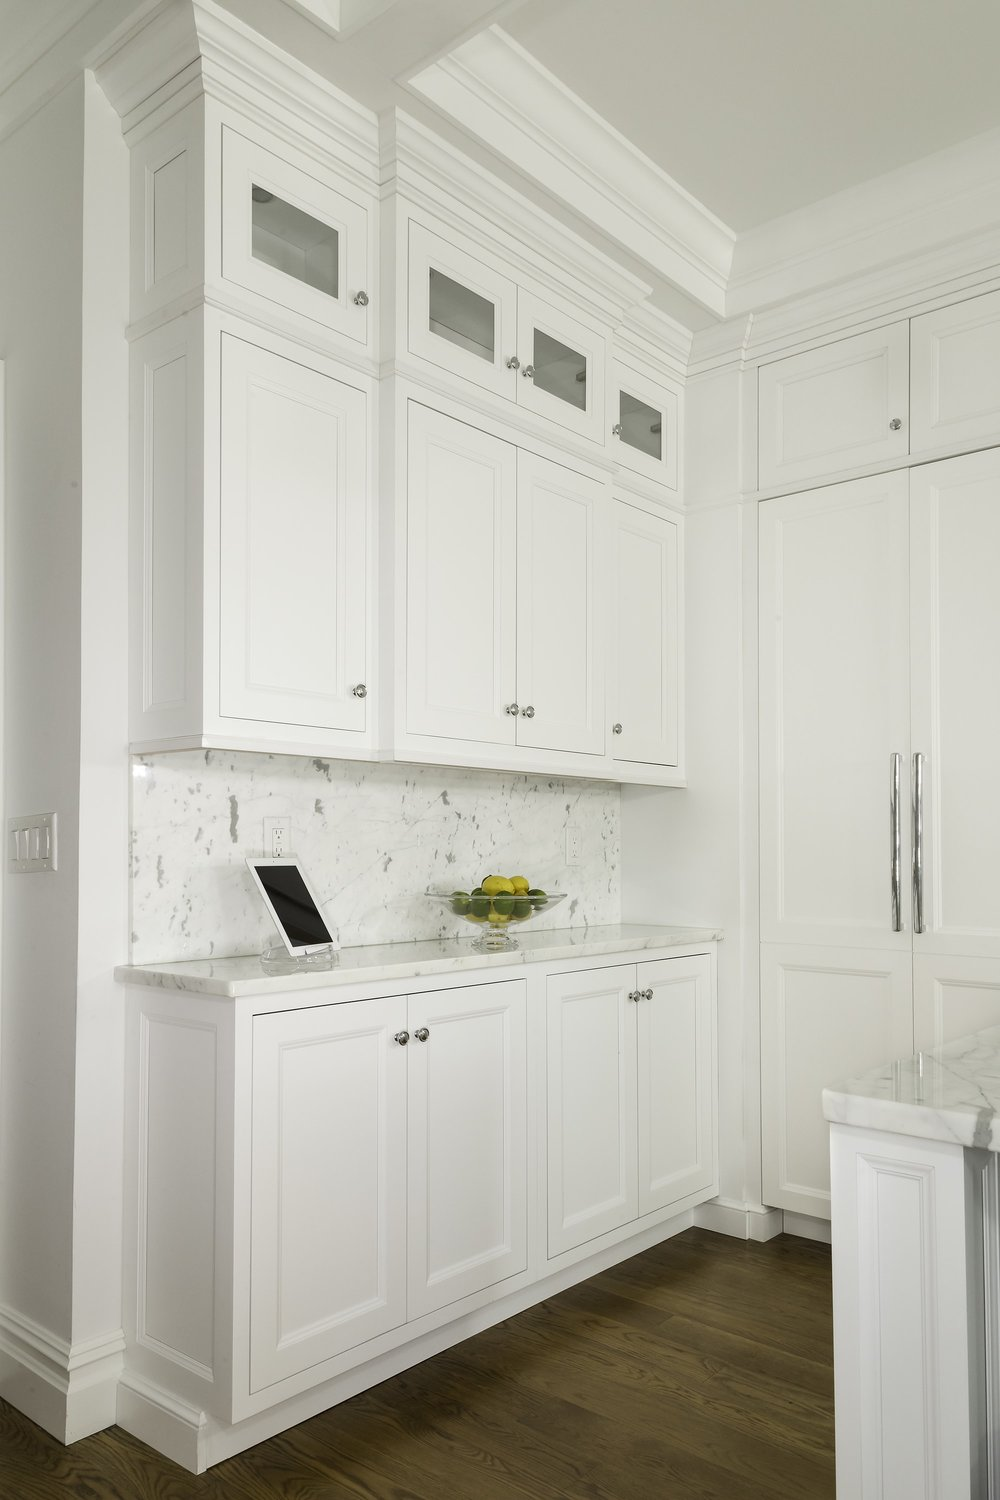 Transitional style kitchen with plenty of room for storage